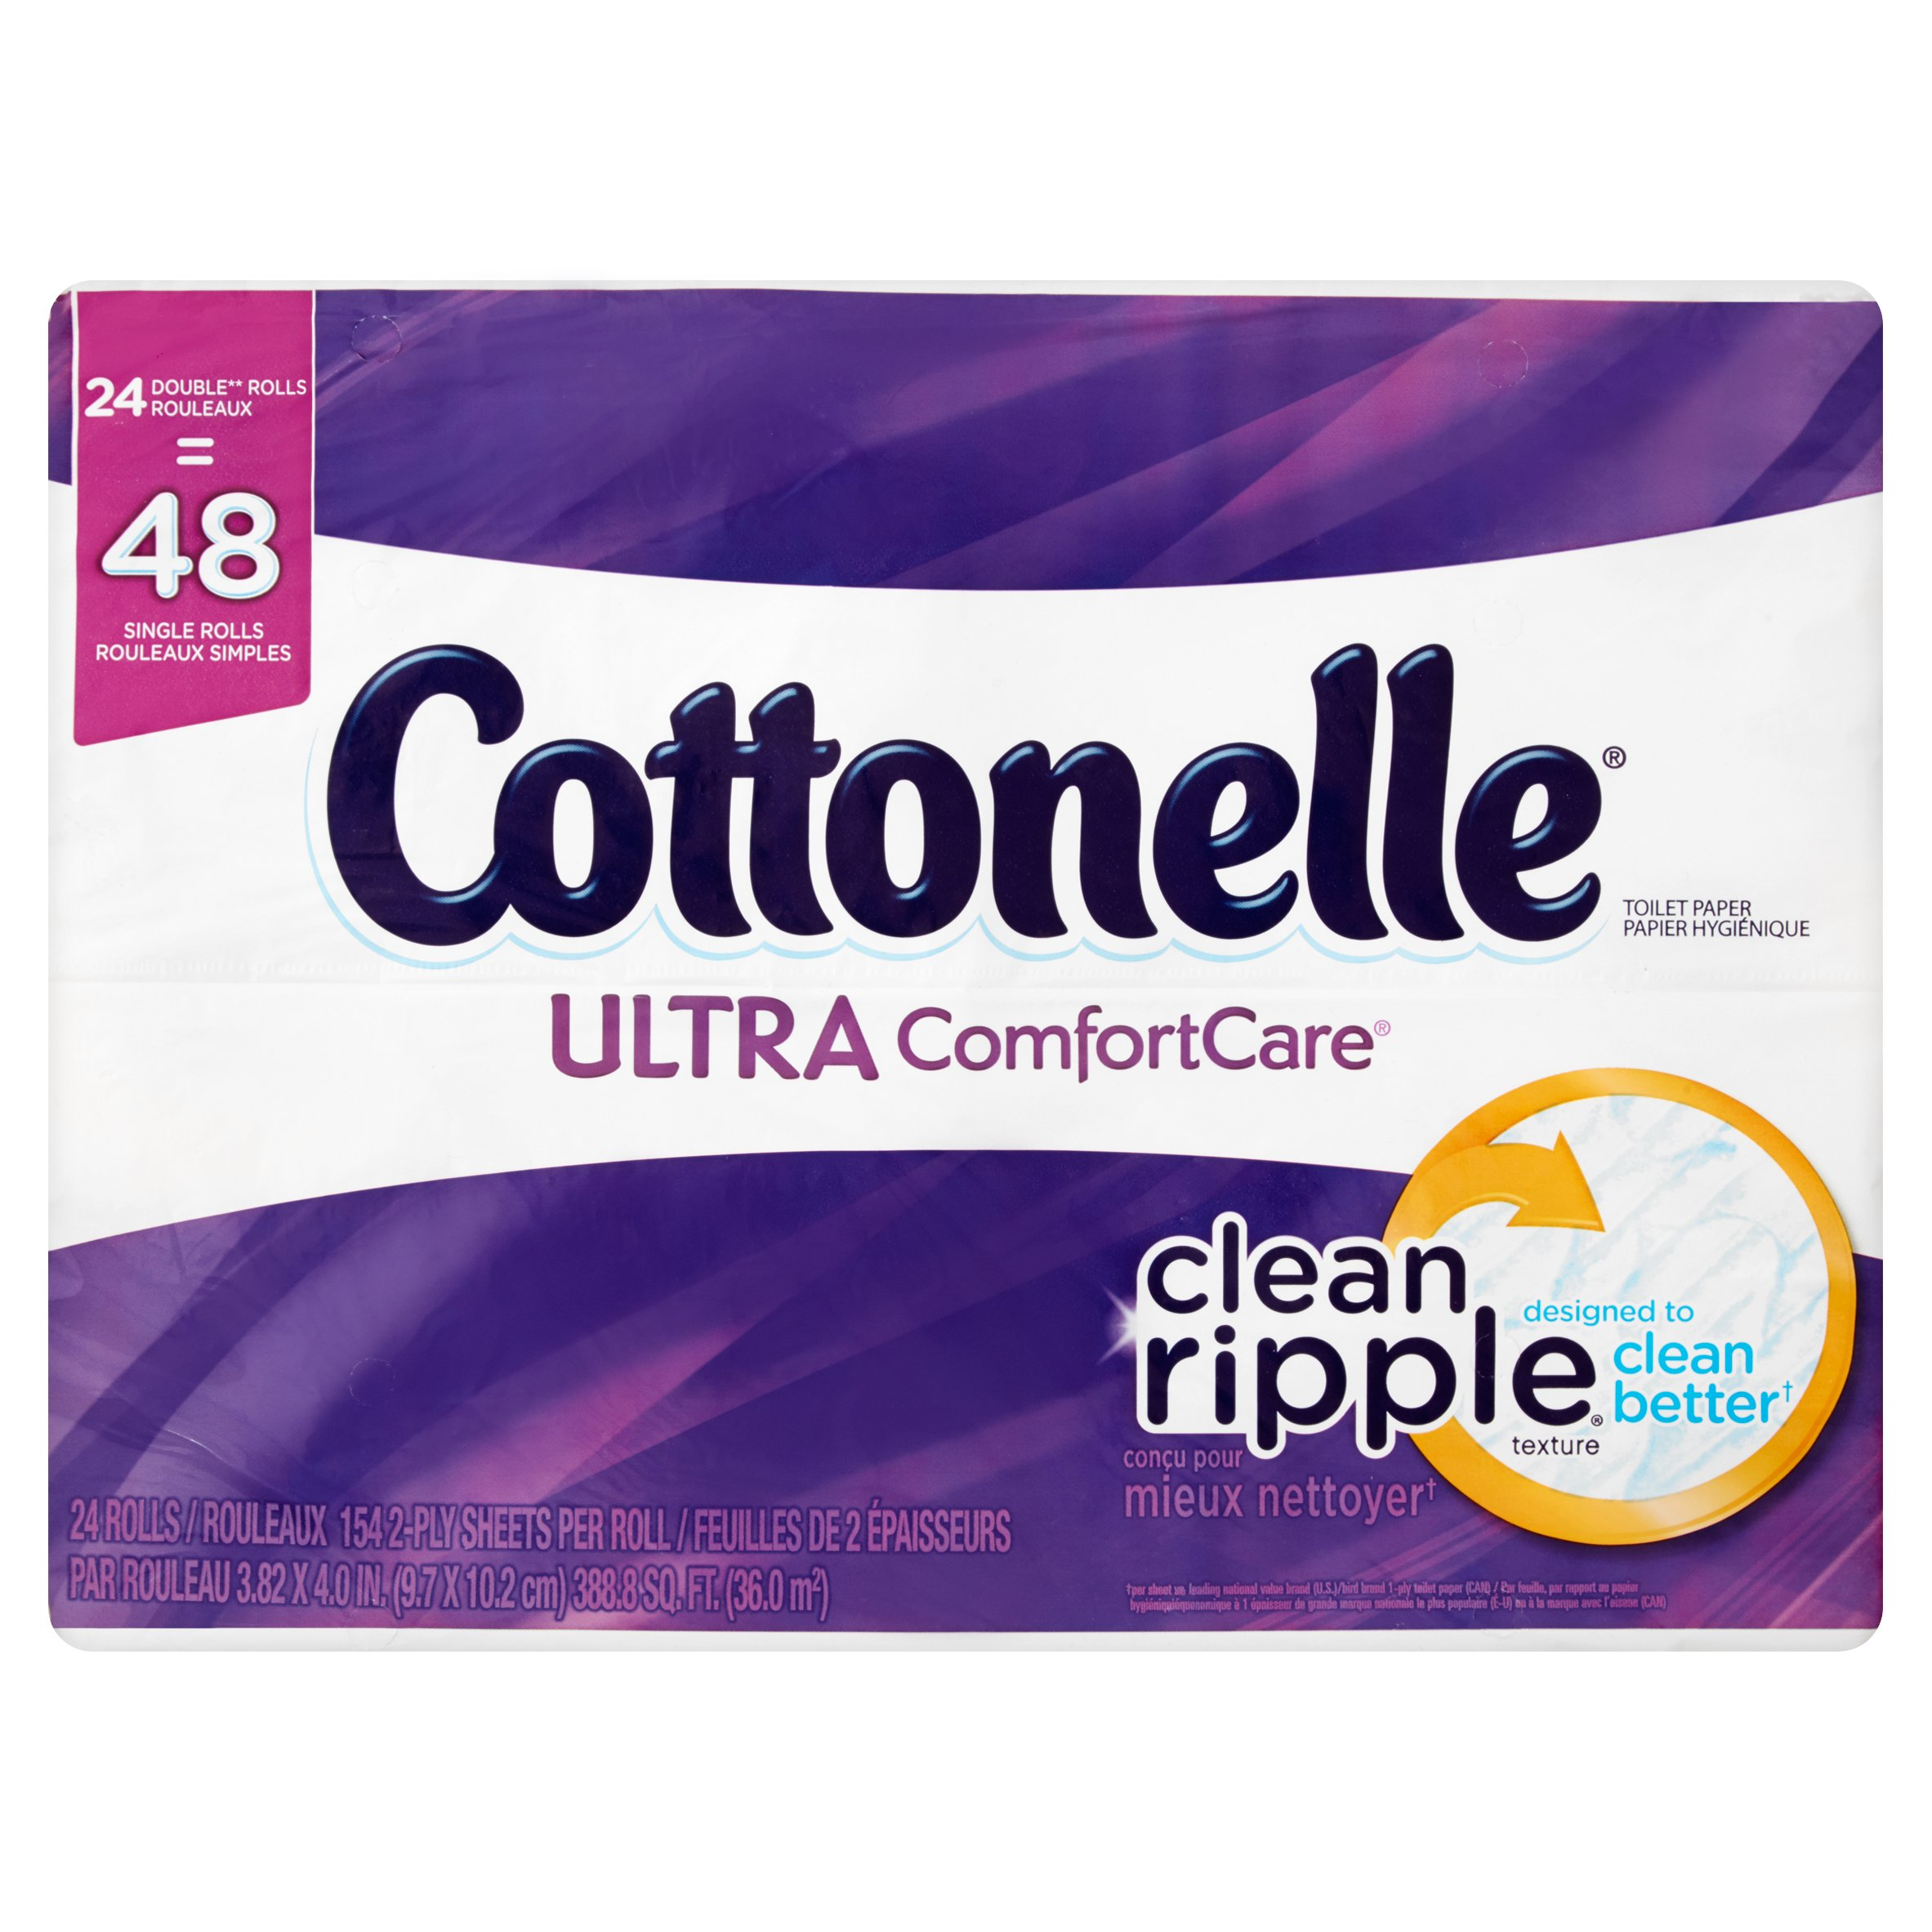 Cottonelle Ultra ComfortCare Toilet Paper Rolls, 24 count by Kimberly-Clark Corp.